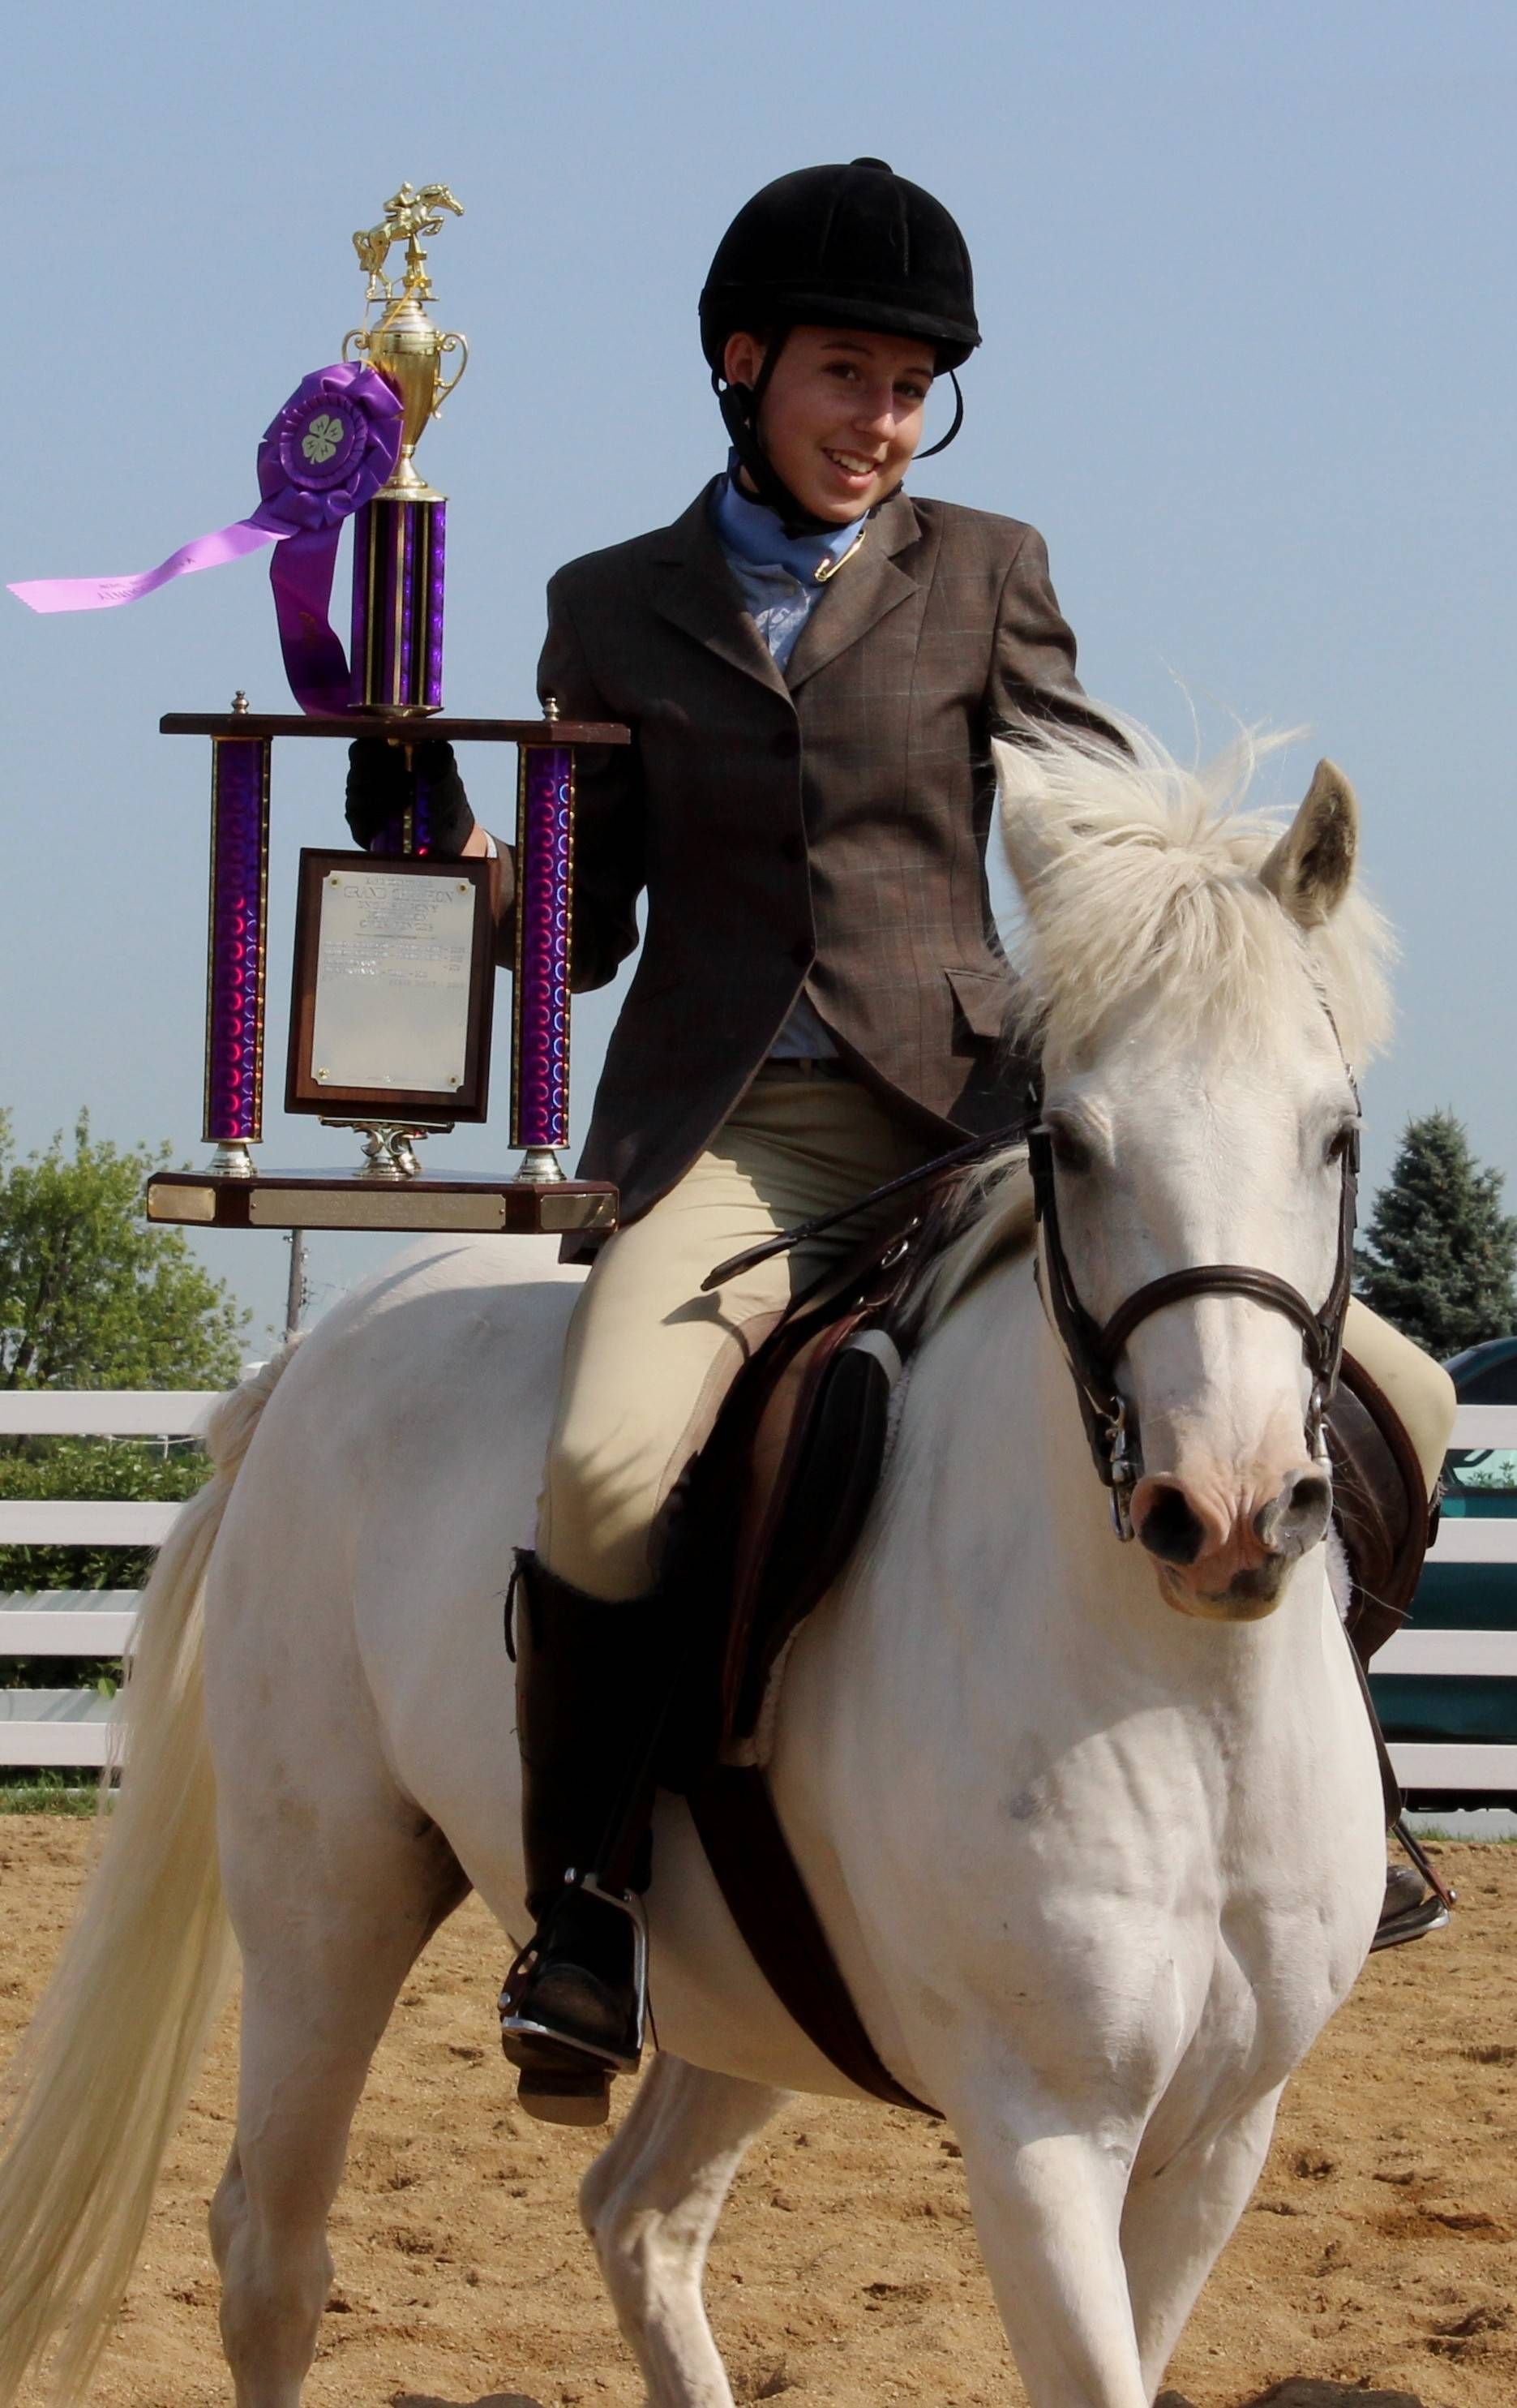 Audrey Gatsch of Wayne earned the Grand Champion trophy for English Pony Equitation over Fences on Thursday during the Kane County 4-H Show and Fair in St. Charles.